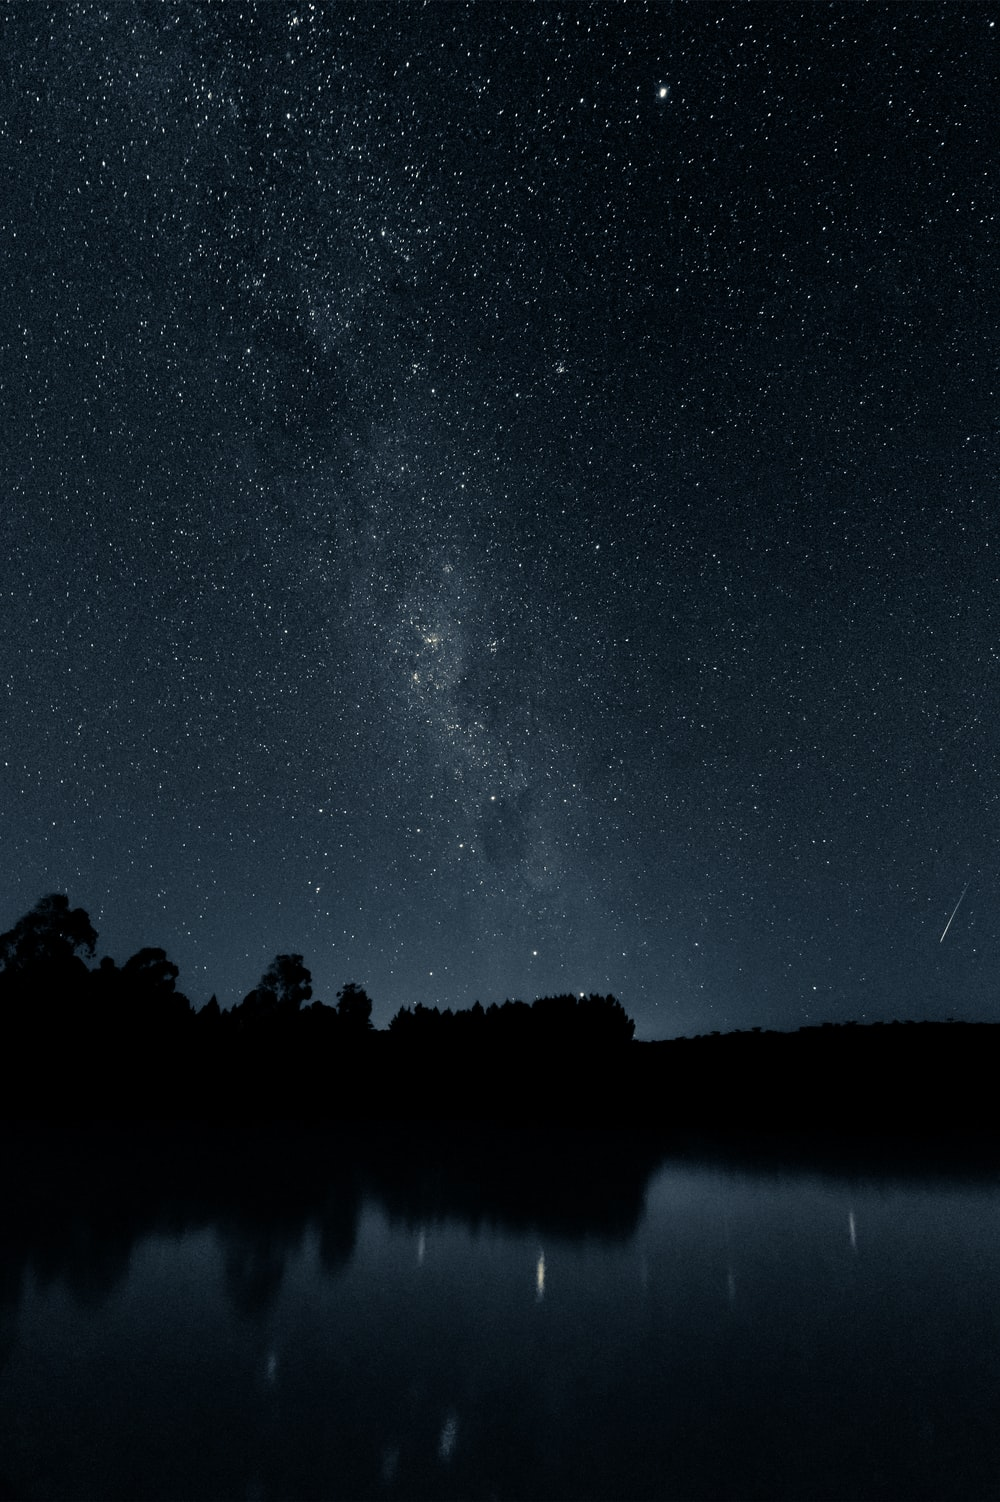 silhouette of trees near body of water under starry night